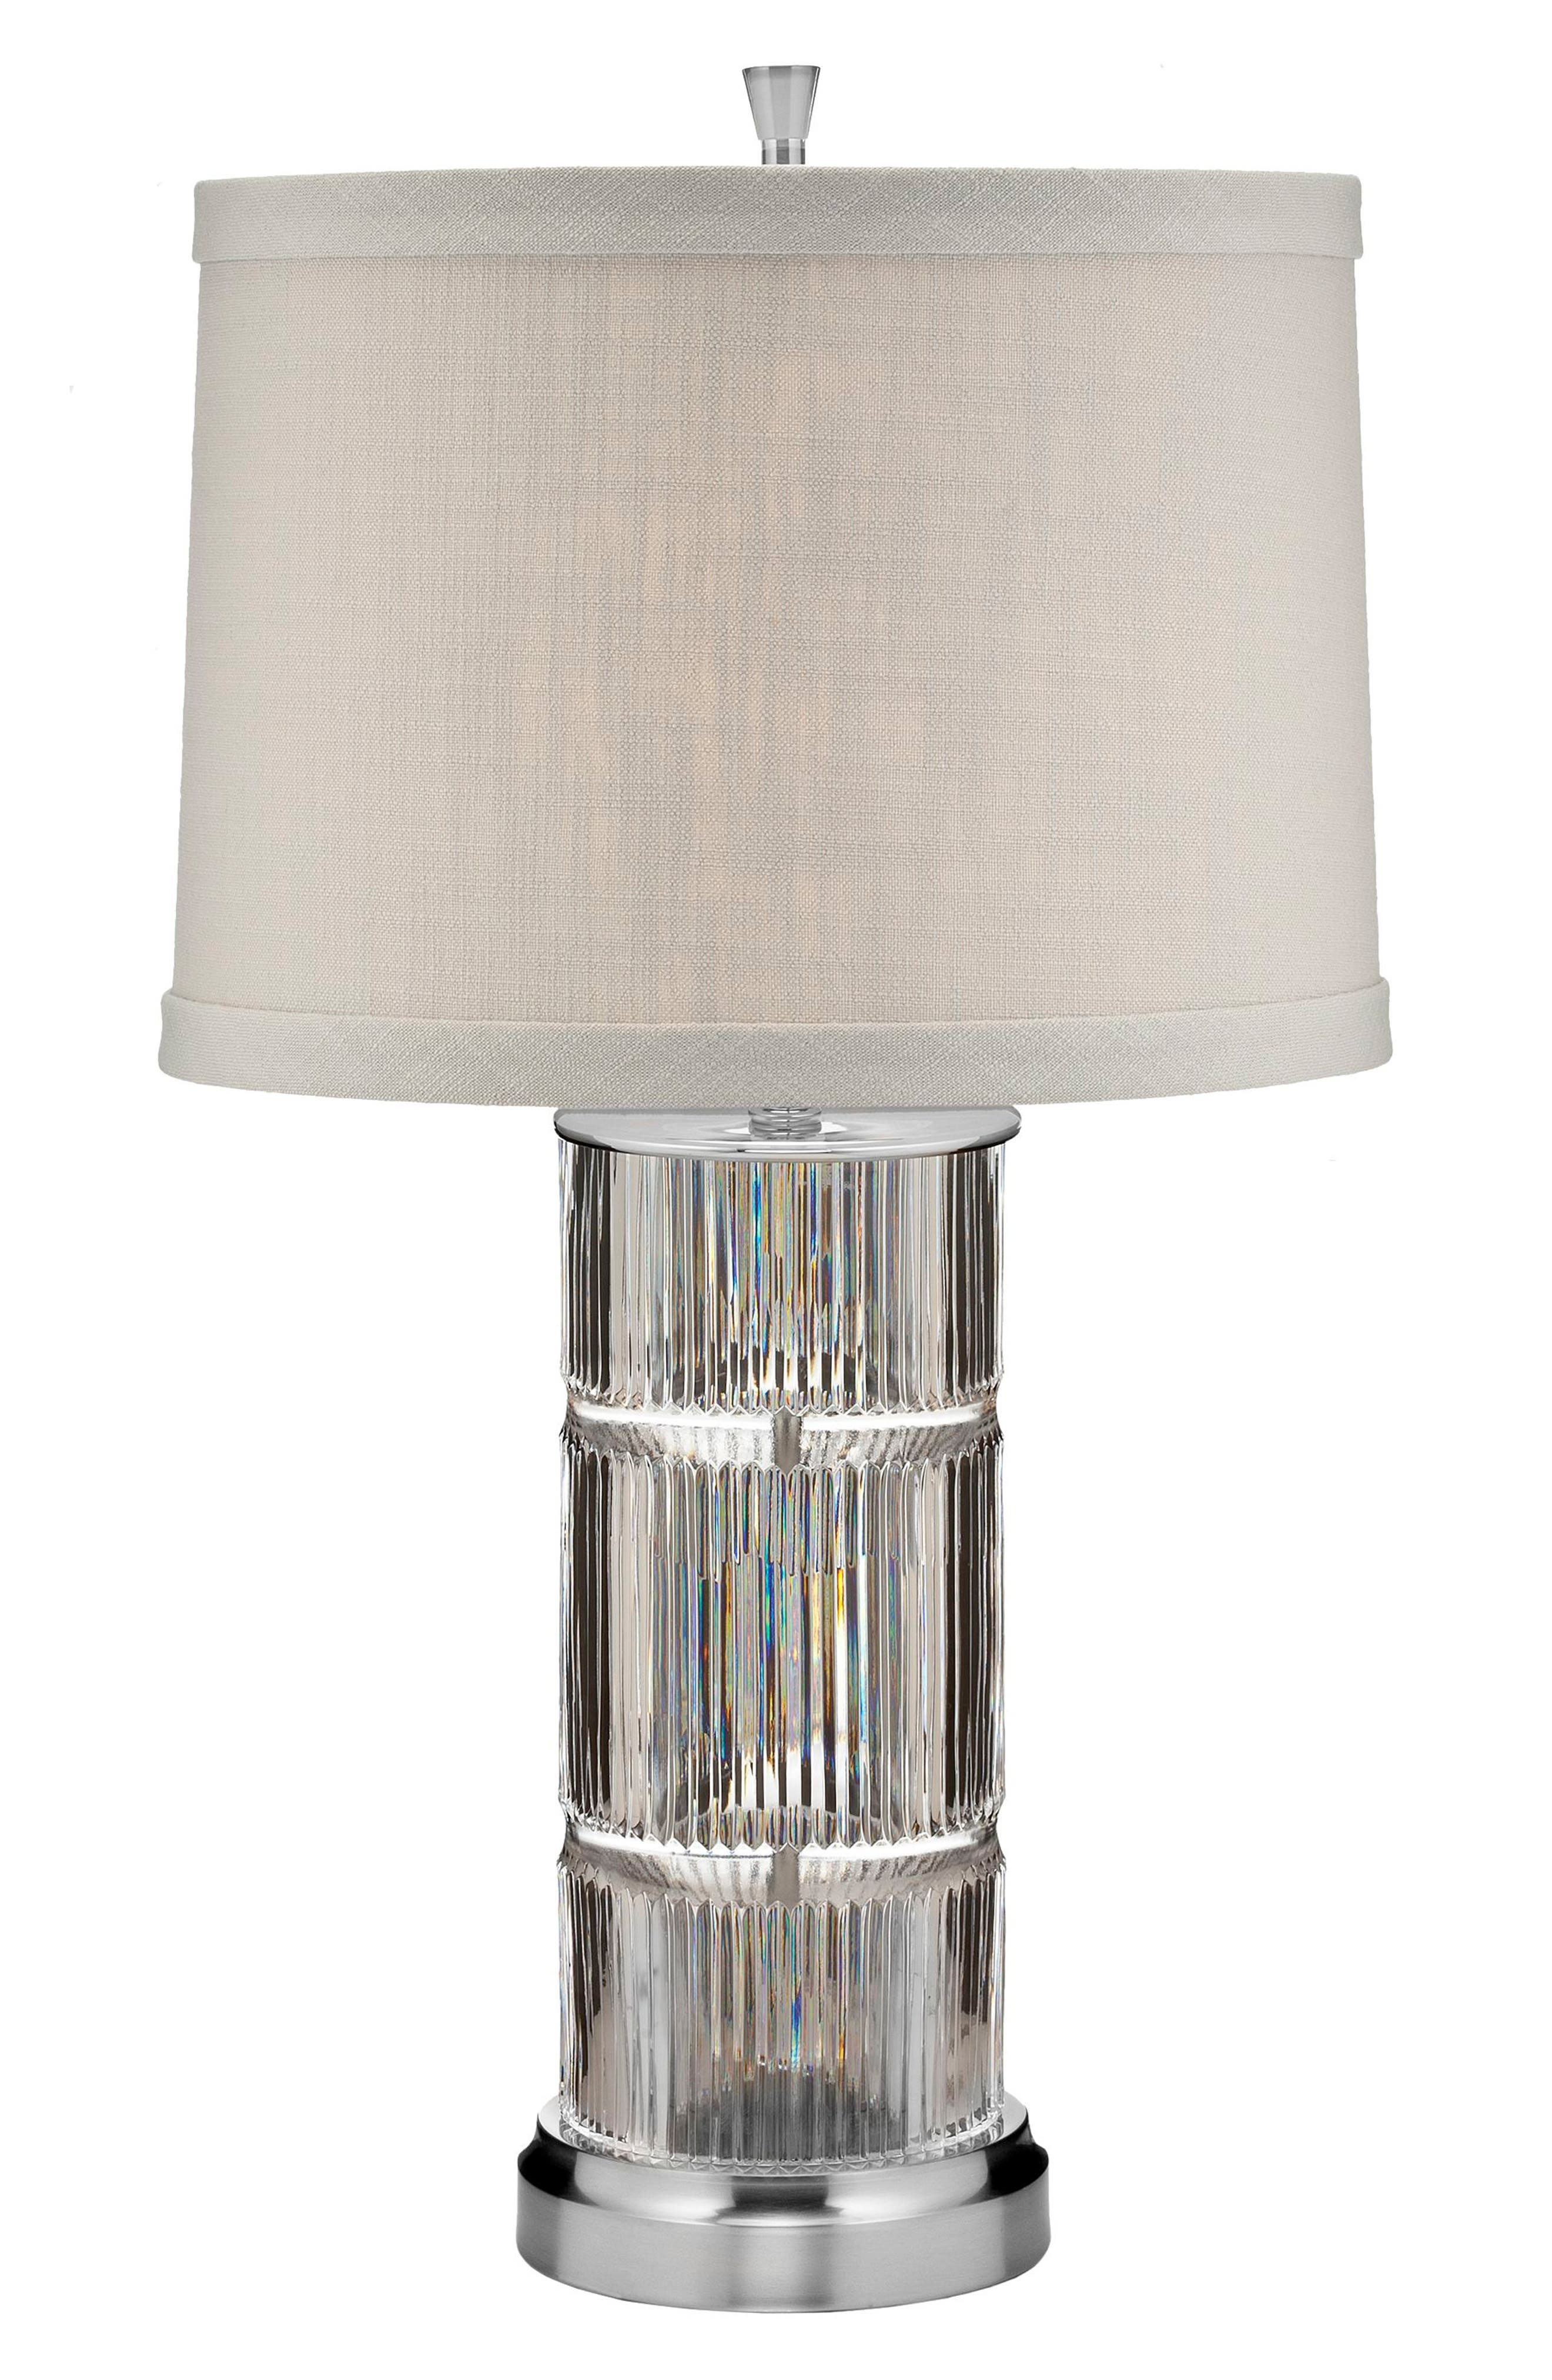 Alternate Image 1 Selected - Waterford Linear Crystal Table Lamp